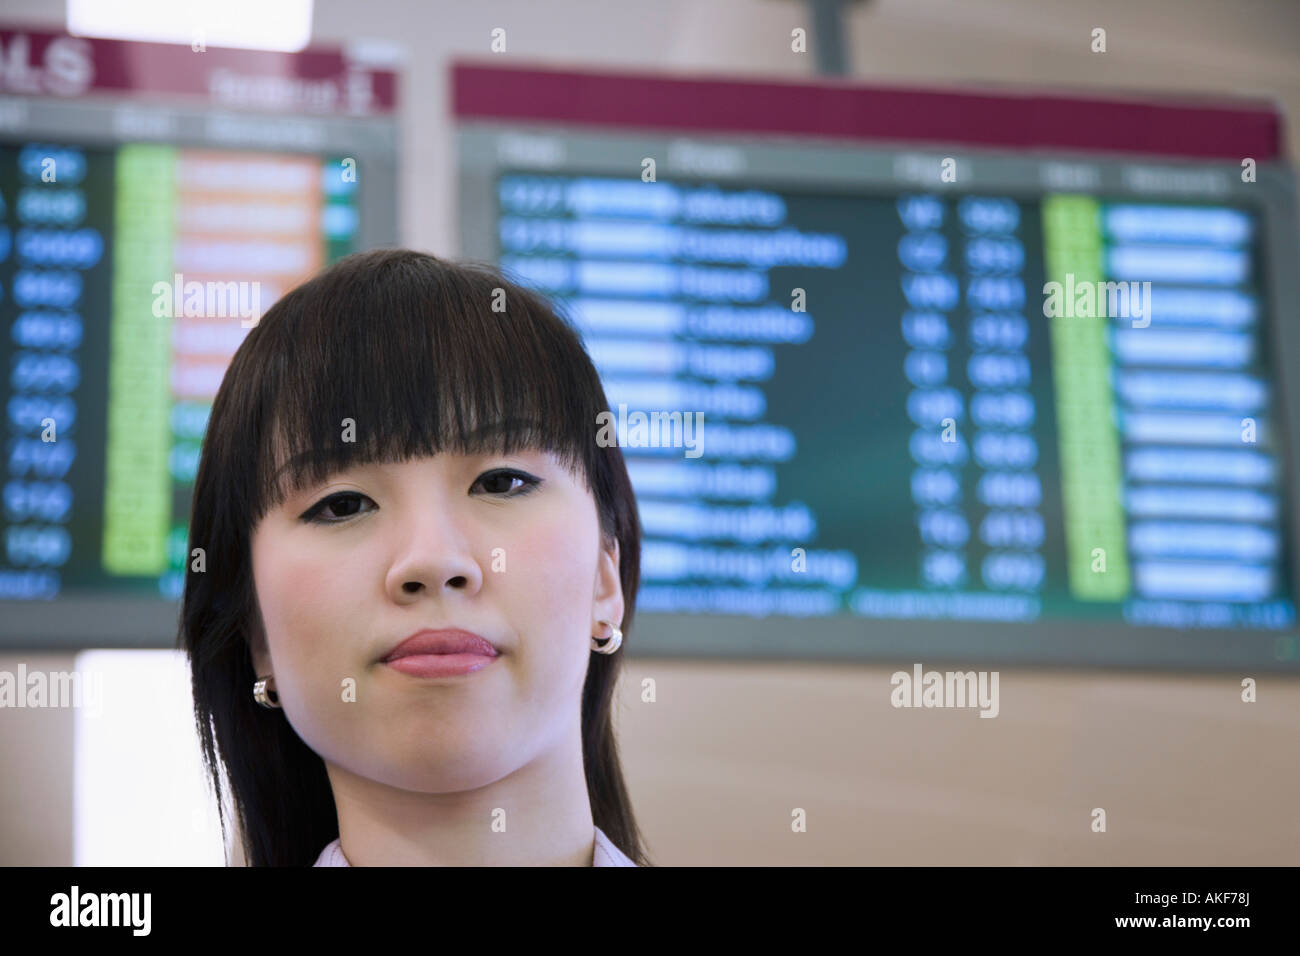 Portrait of a businesswoman in front of an arrival departure board - Stock Image